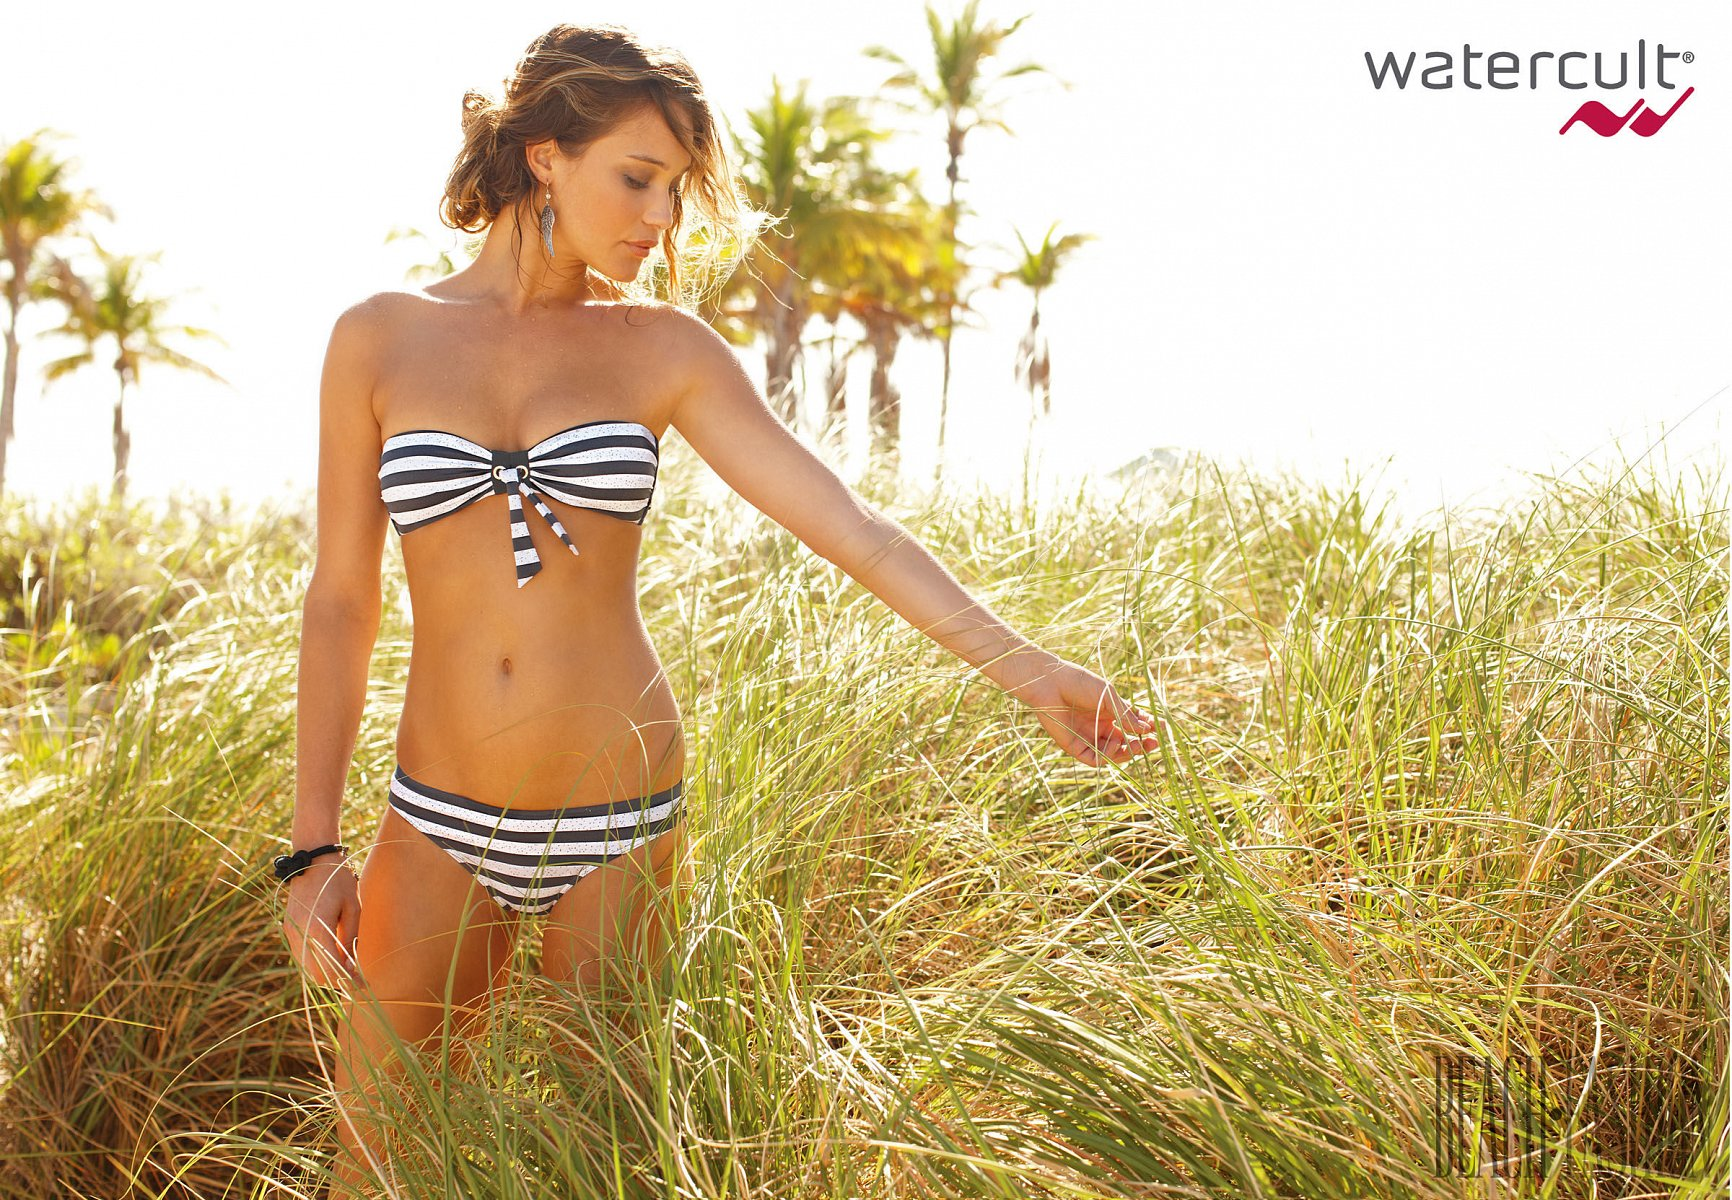 Watercult 2013 collection - Swimwear - 6